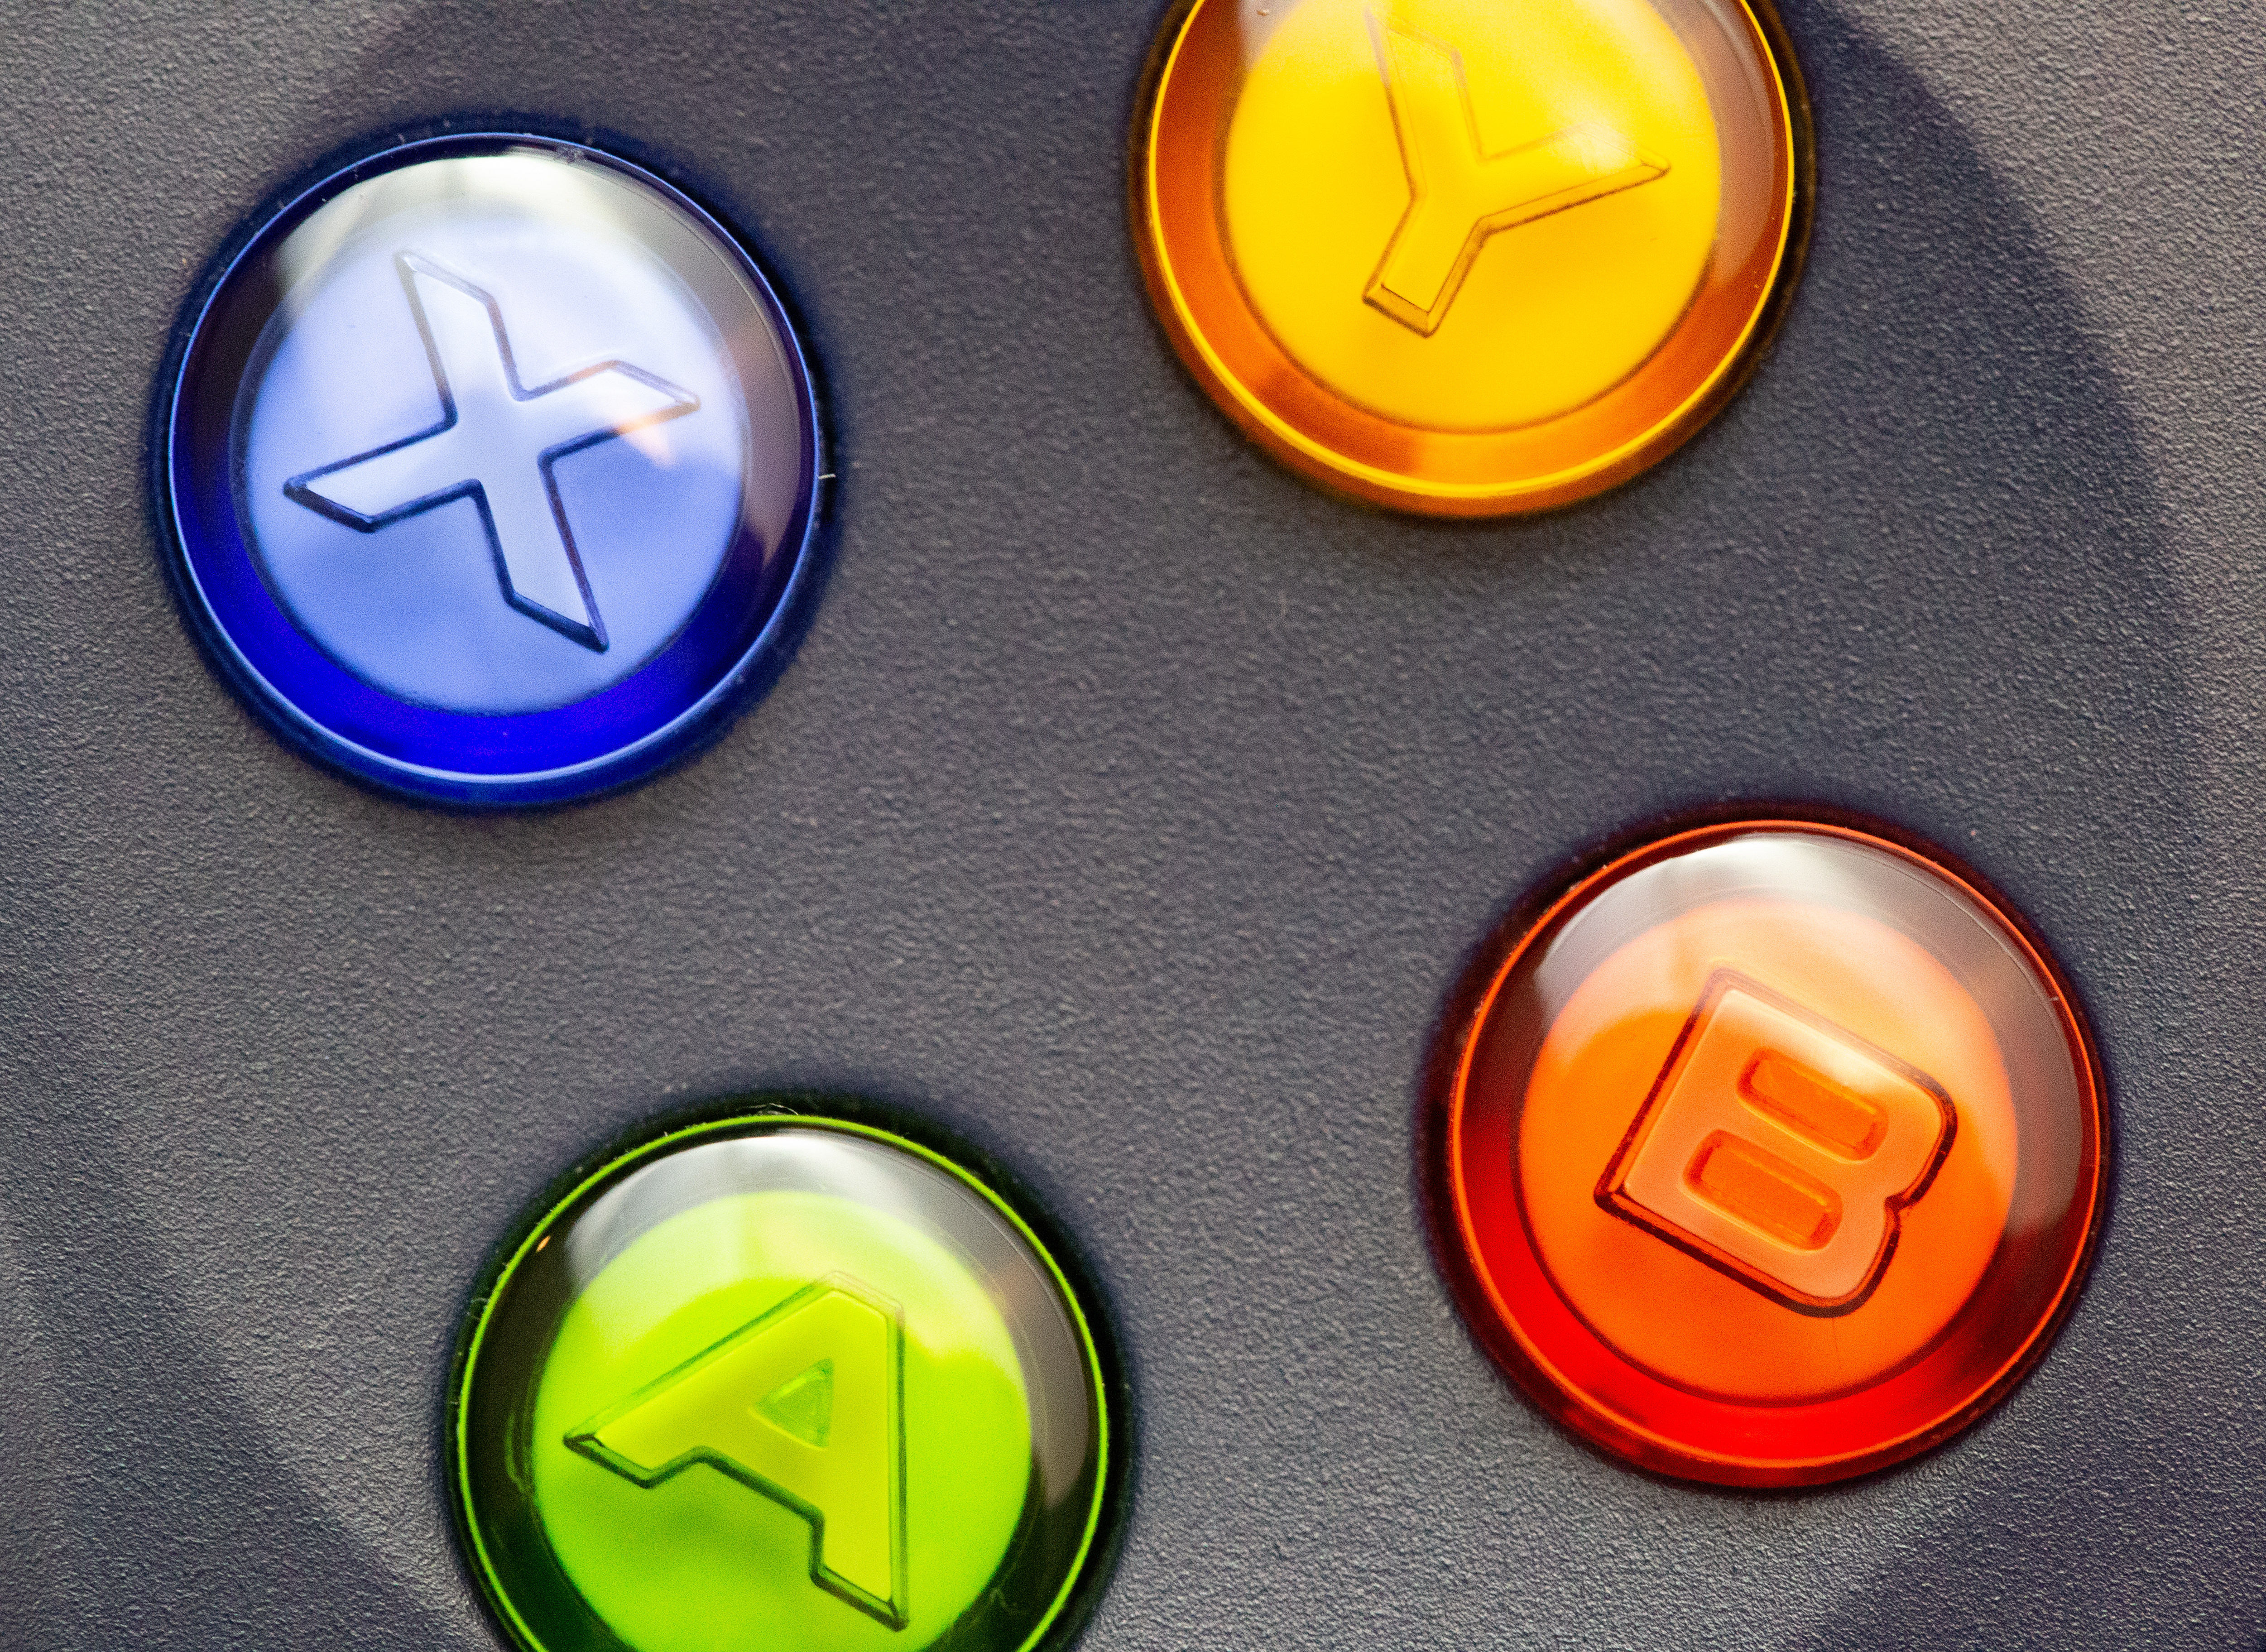 How to set up a gamified rewards system for employees